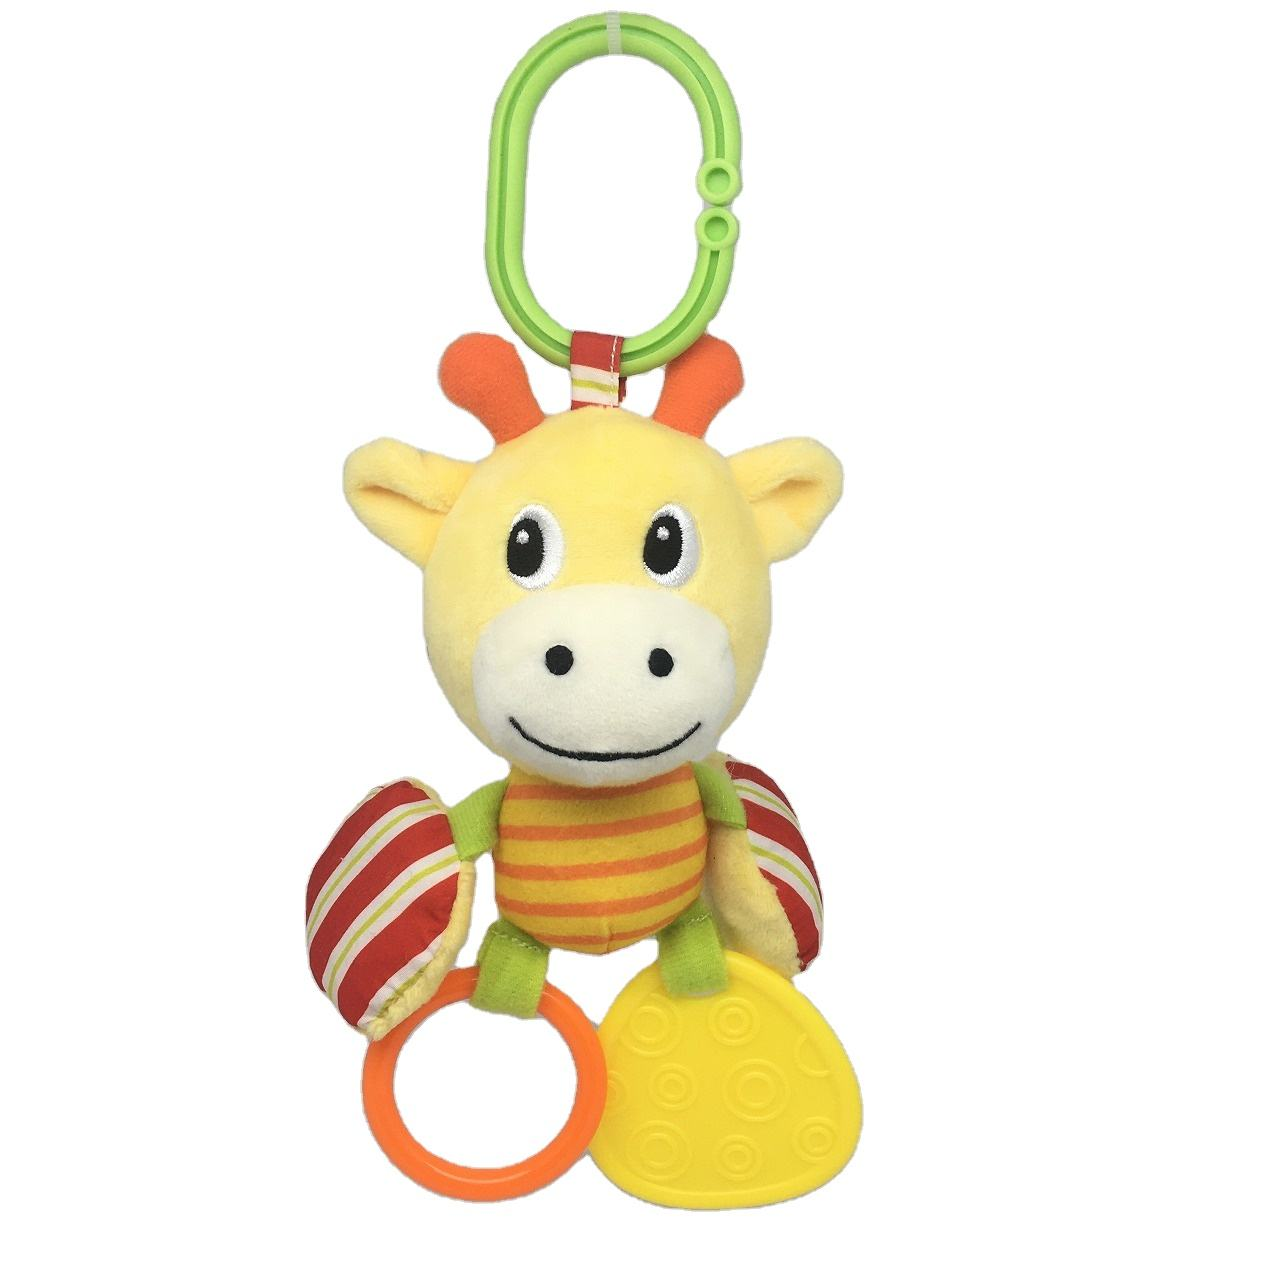 Safety Infant Kids Bell stuffing activity learning rattle teether with sound animal charater kids toys baby rattle